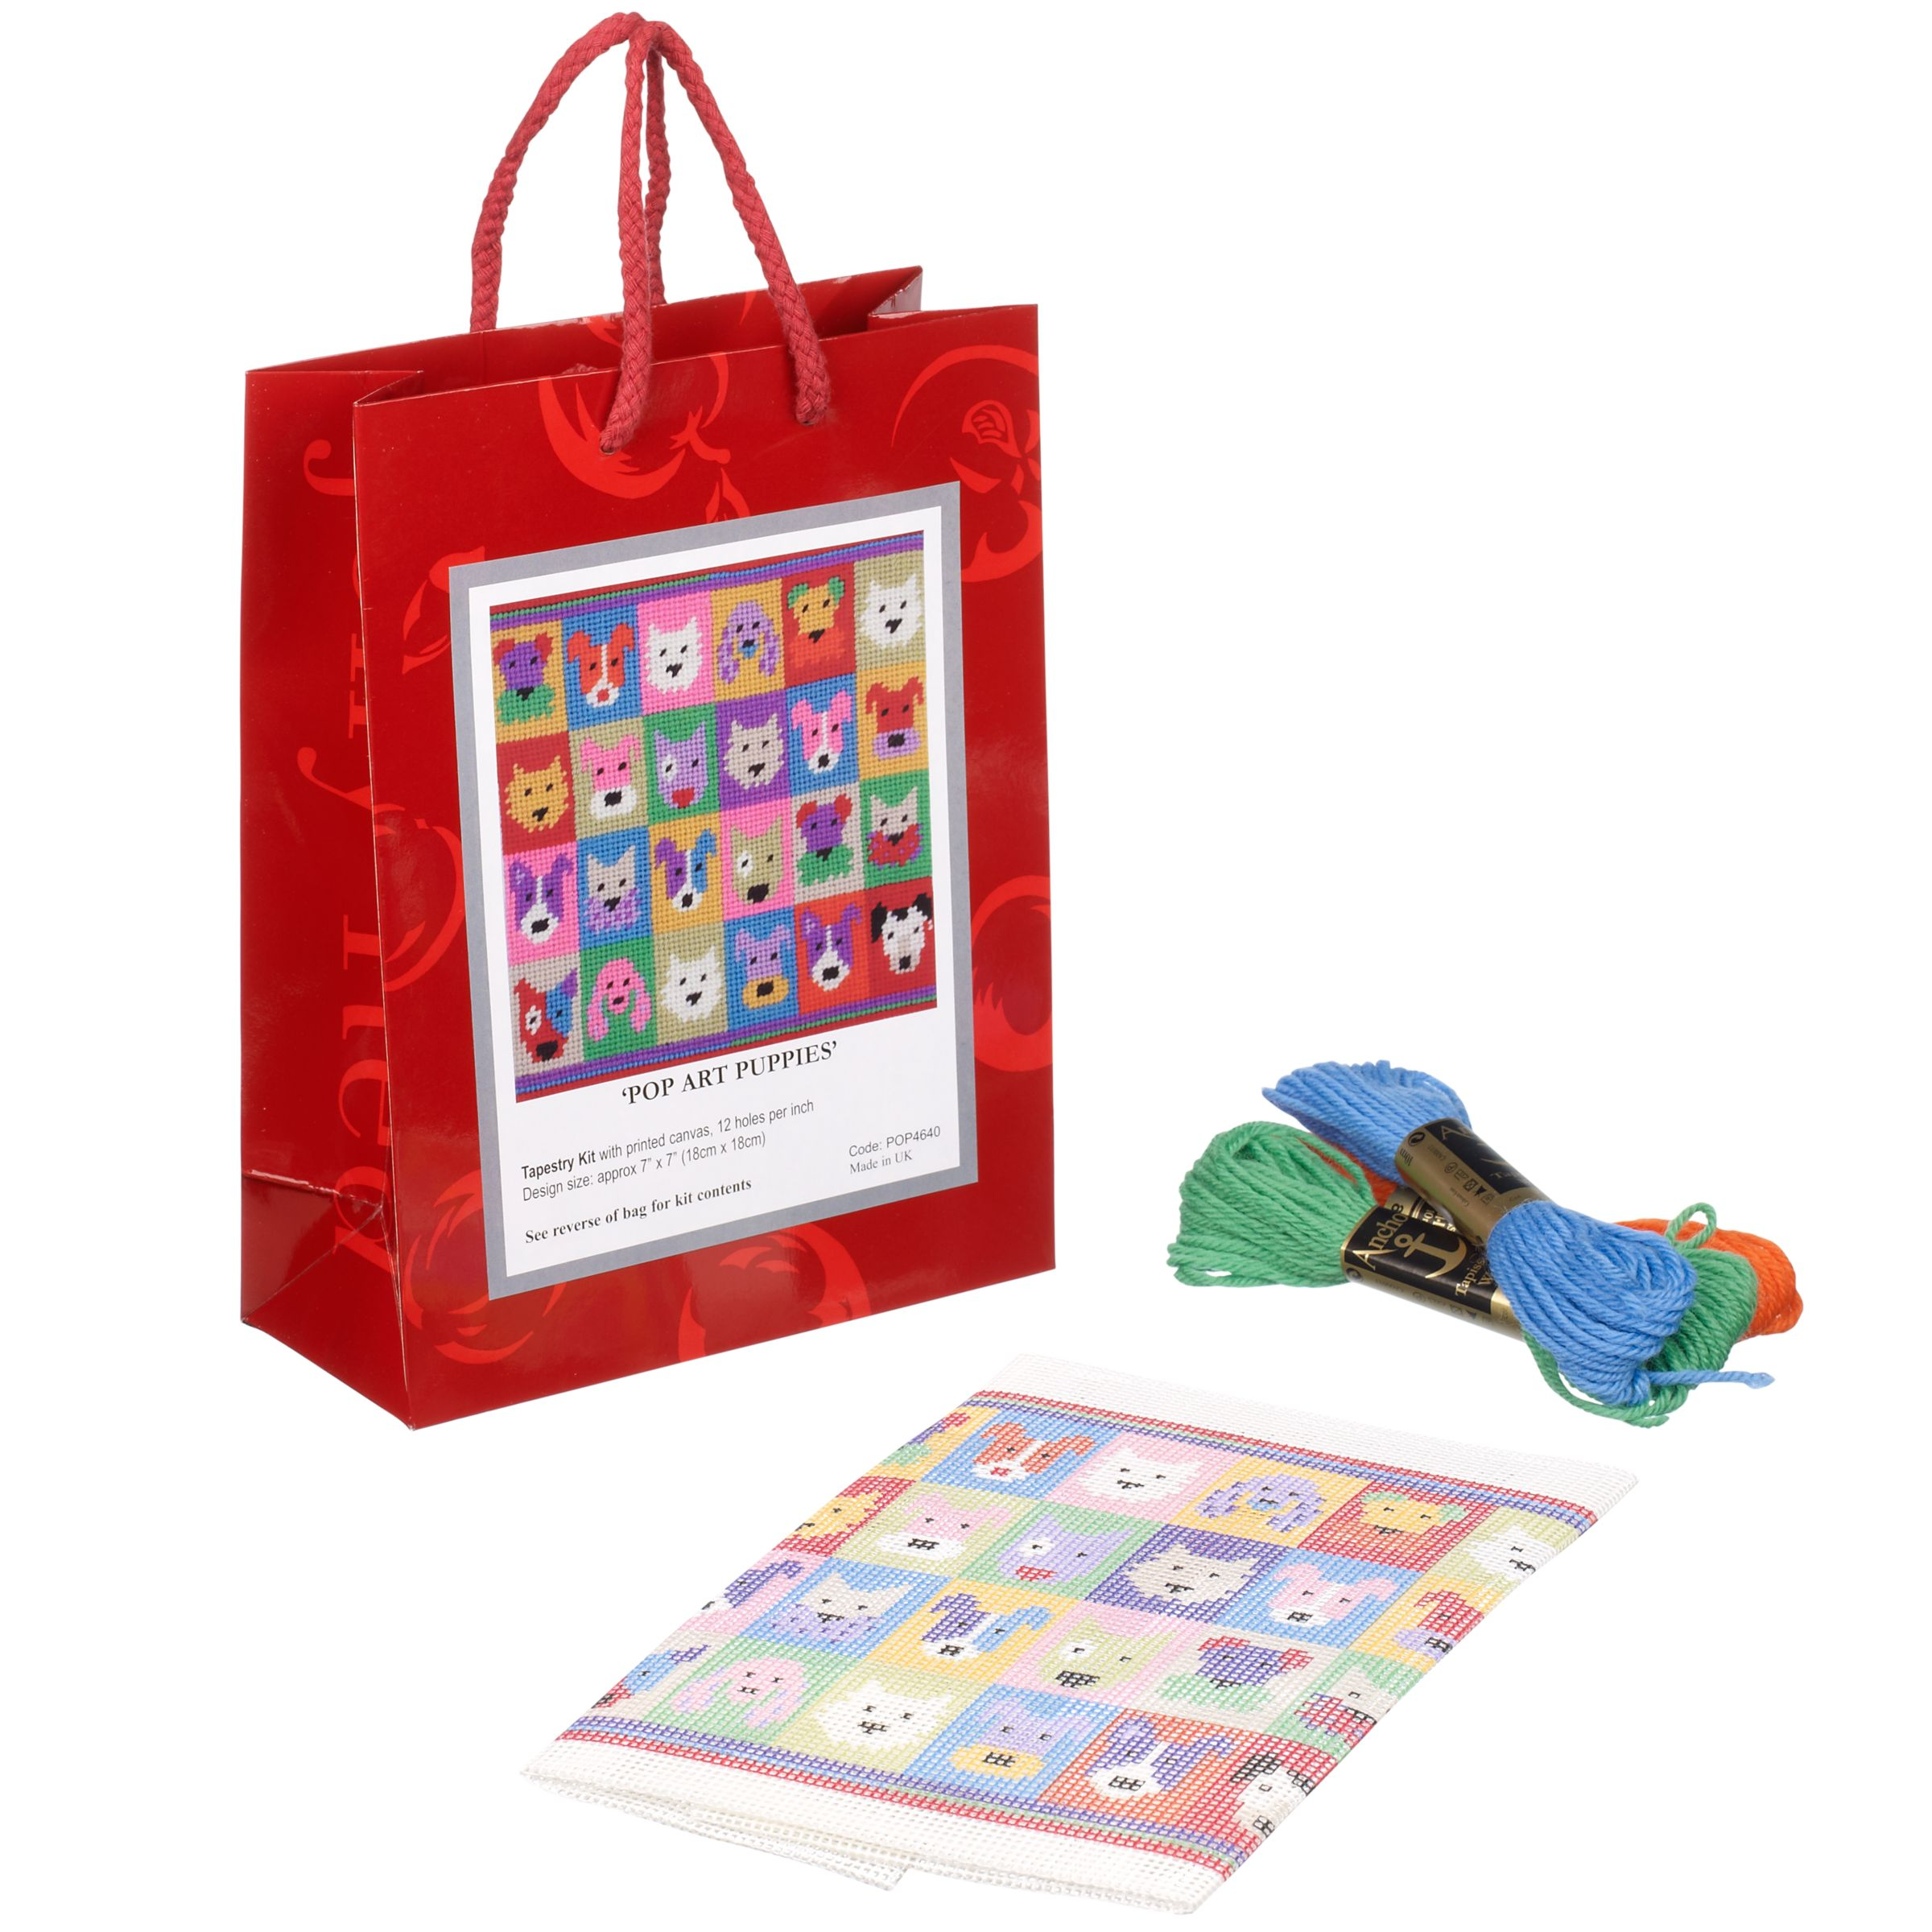 Jolly Red Pop Art Puppies Tapestry Kit